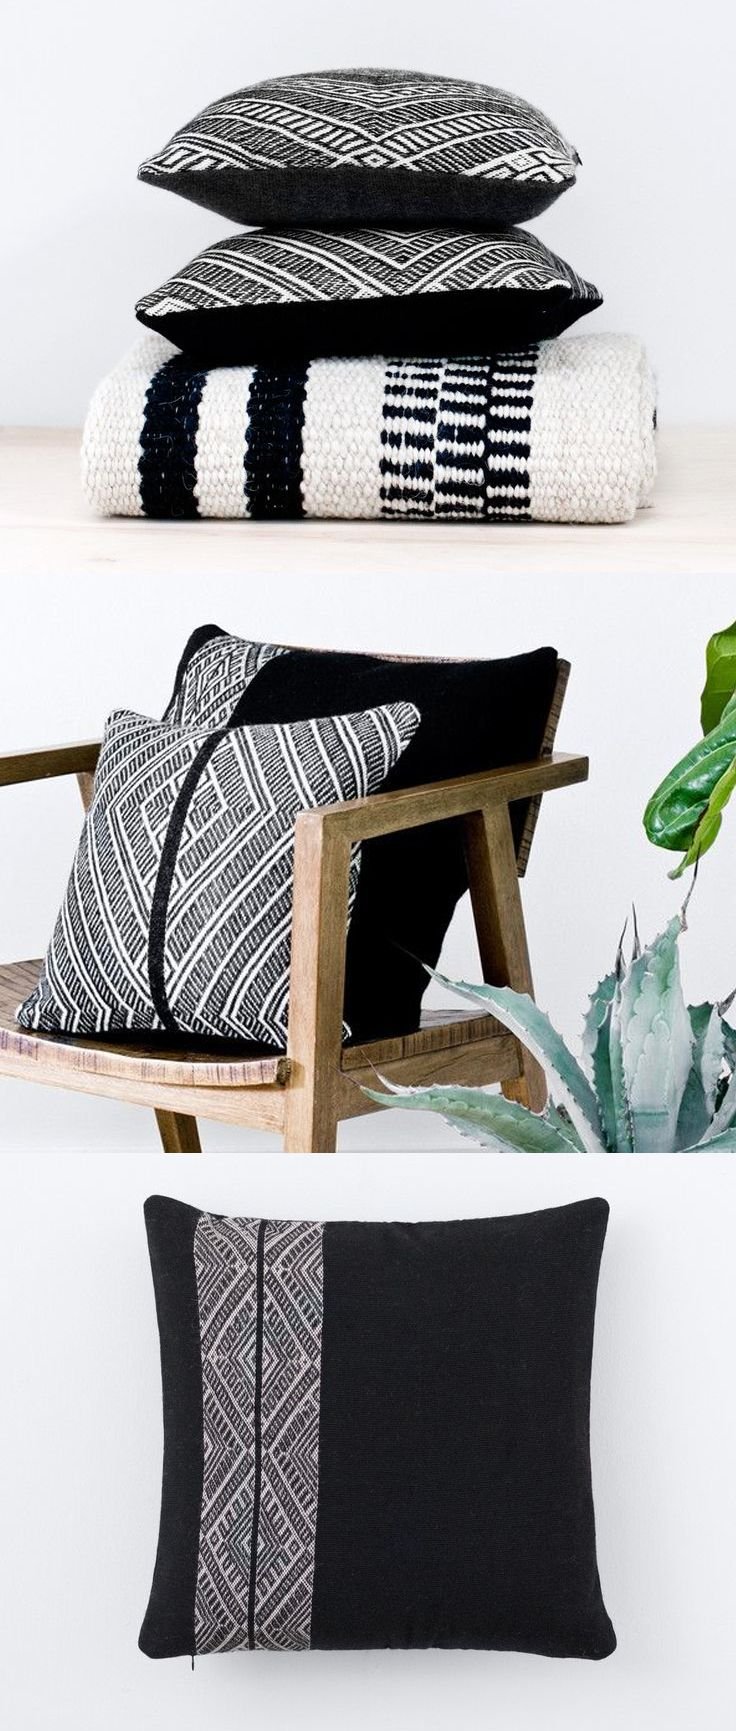 Sombra Rug, Black and White Pillows, Cool Chair